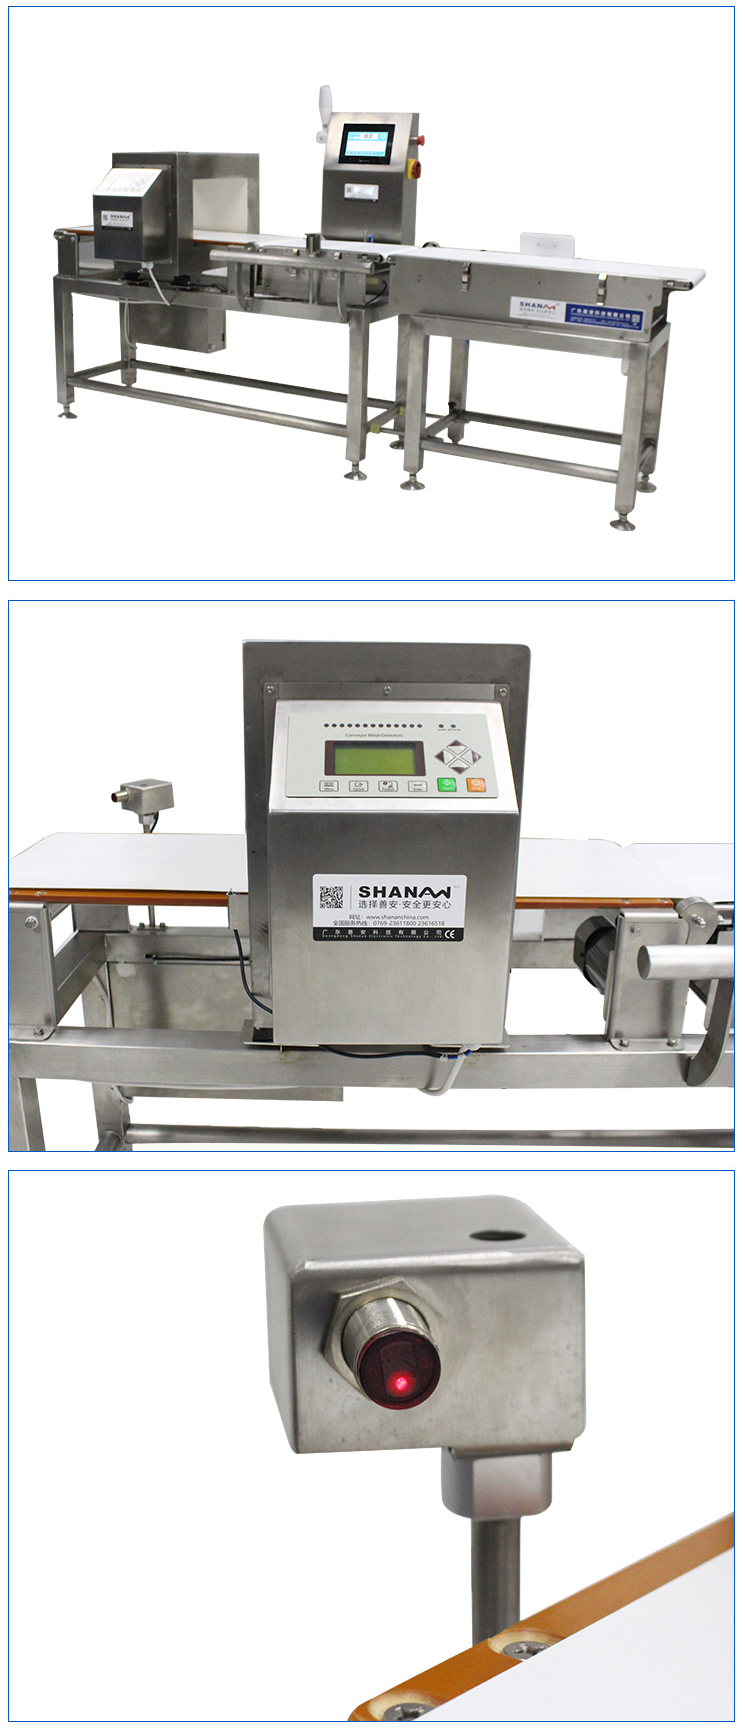 Metal detector and checkweigher all in one machine for food, medicine, clothing, shoemaking, chemicals